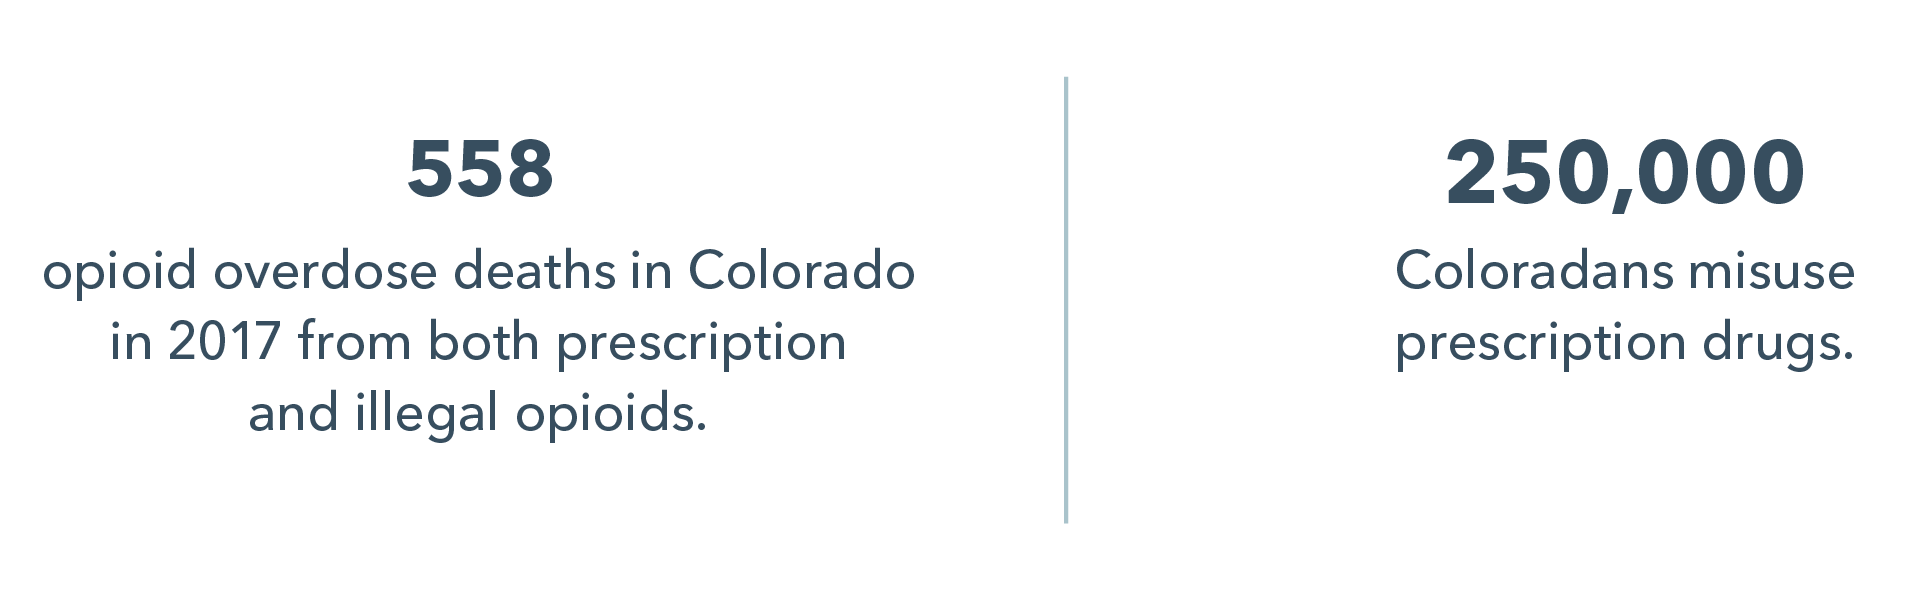 Colorado opioid stats | UCHealth